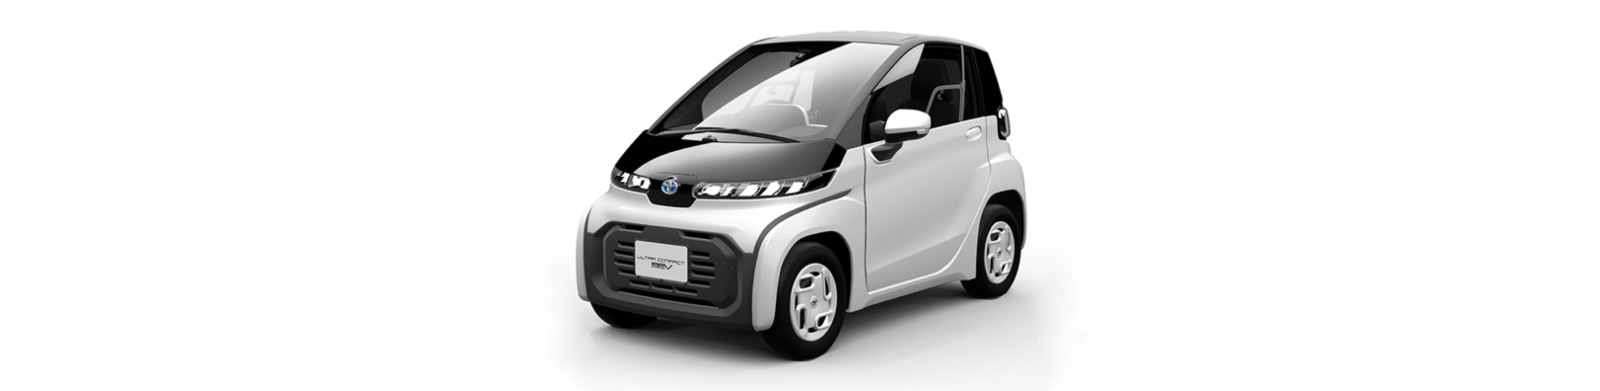 Toyota to showcase its production-ready ultra-compact BEV at the 2019 Tokyo Motor Show